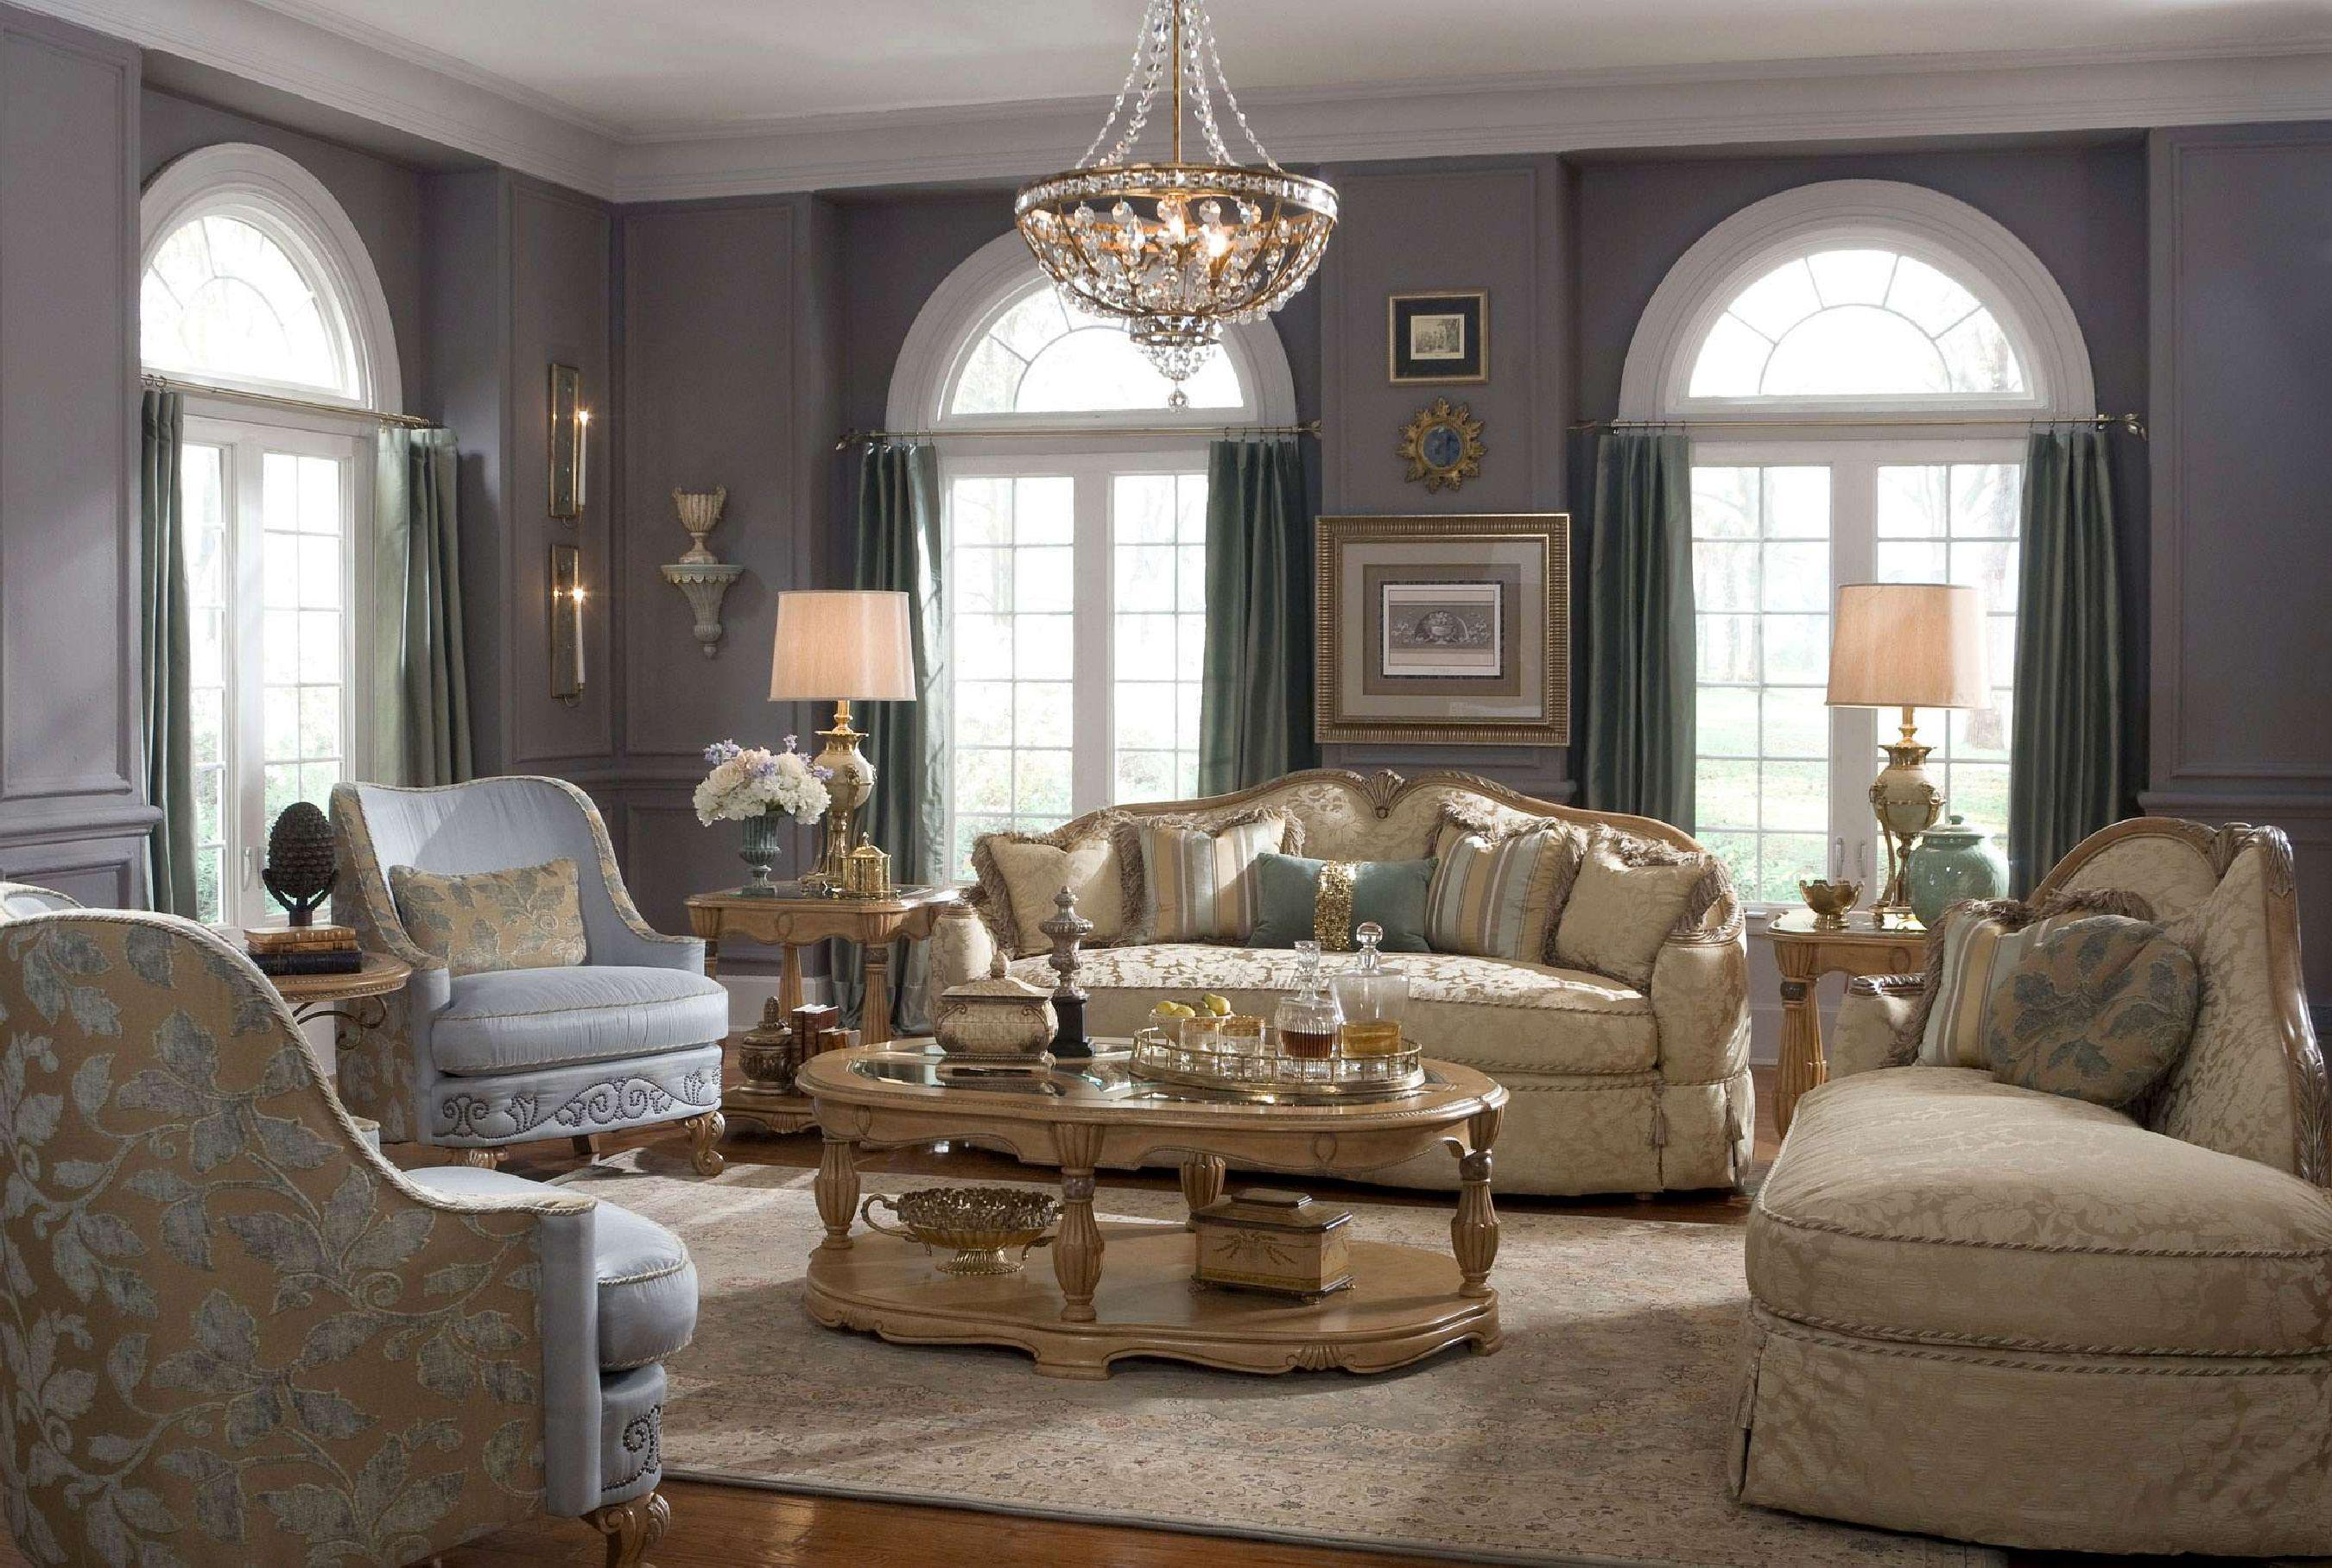 Living Room How To Decorate Your Home interior design gallery decorating your home with 3 benefits of antiques of